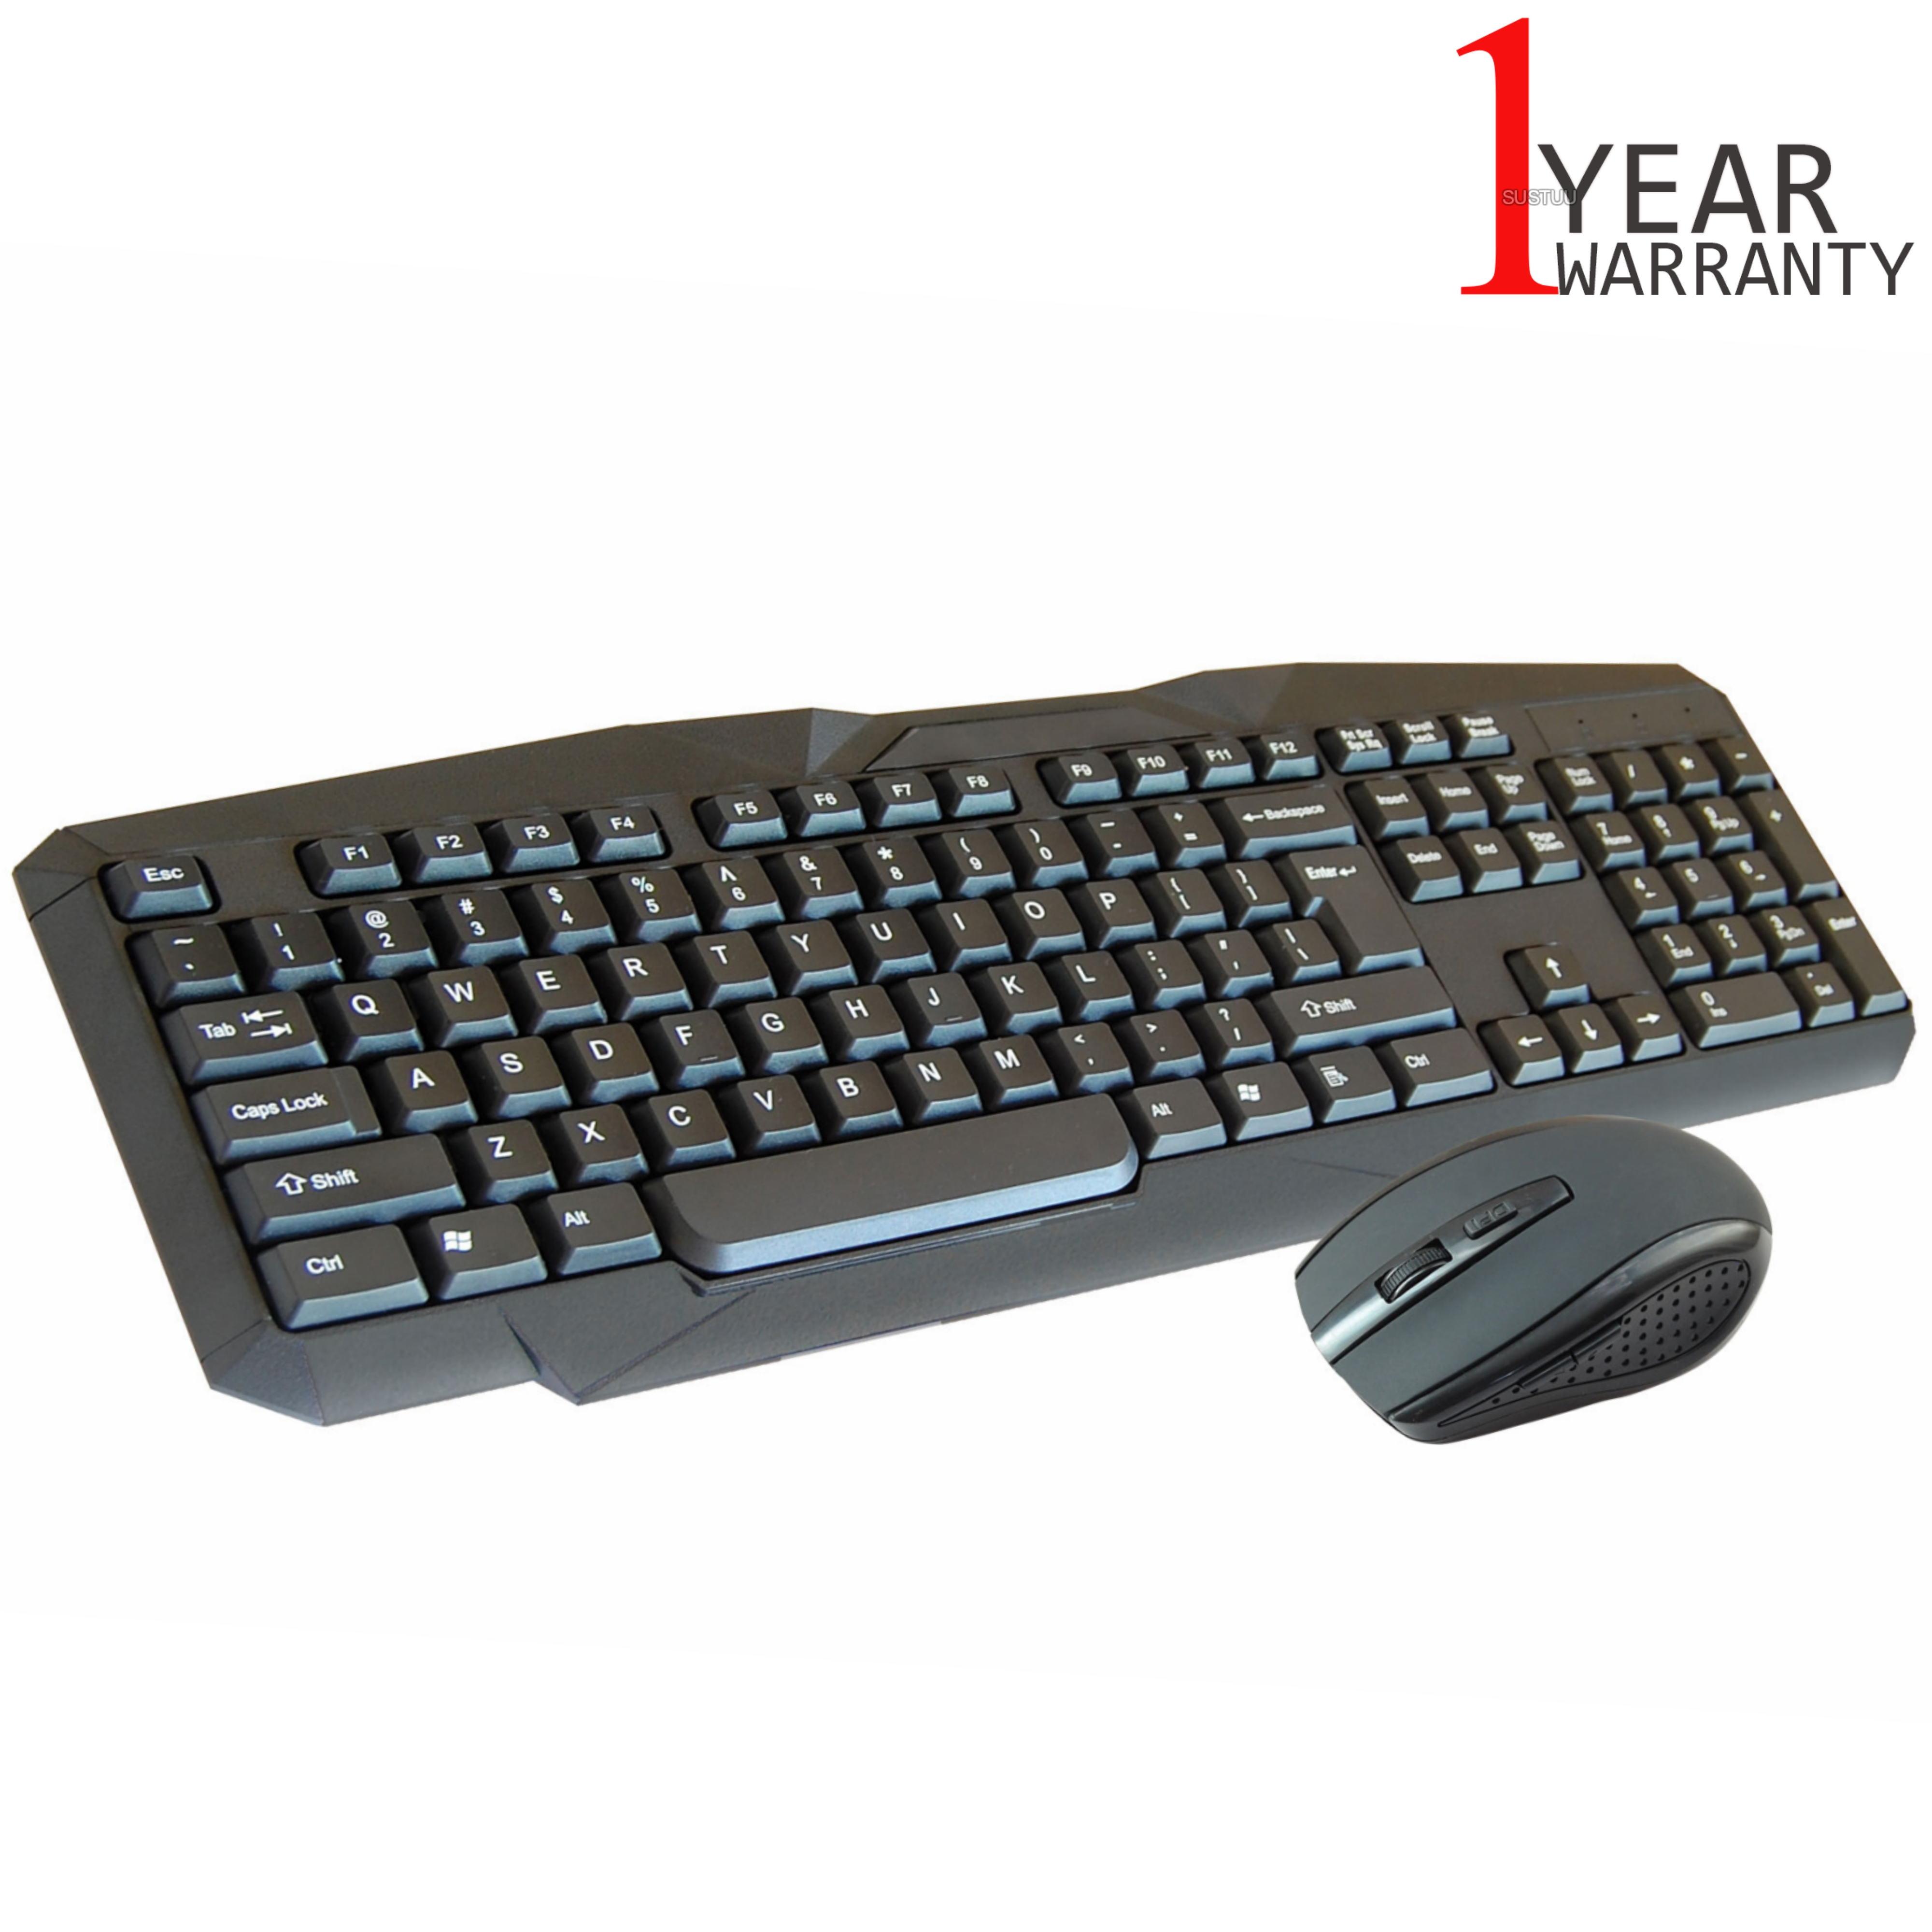 Infapower New X206 Full Size Wireless Keyboard & Mouse Combo Set|PC/Mac/Laptop|